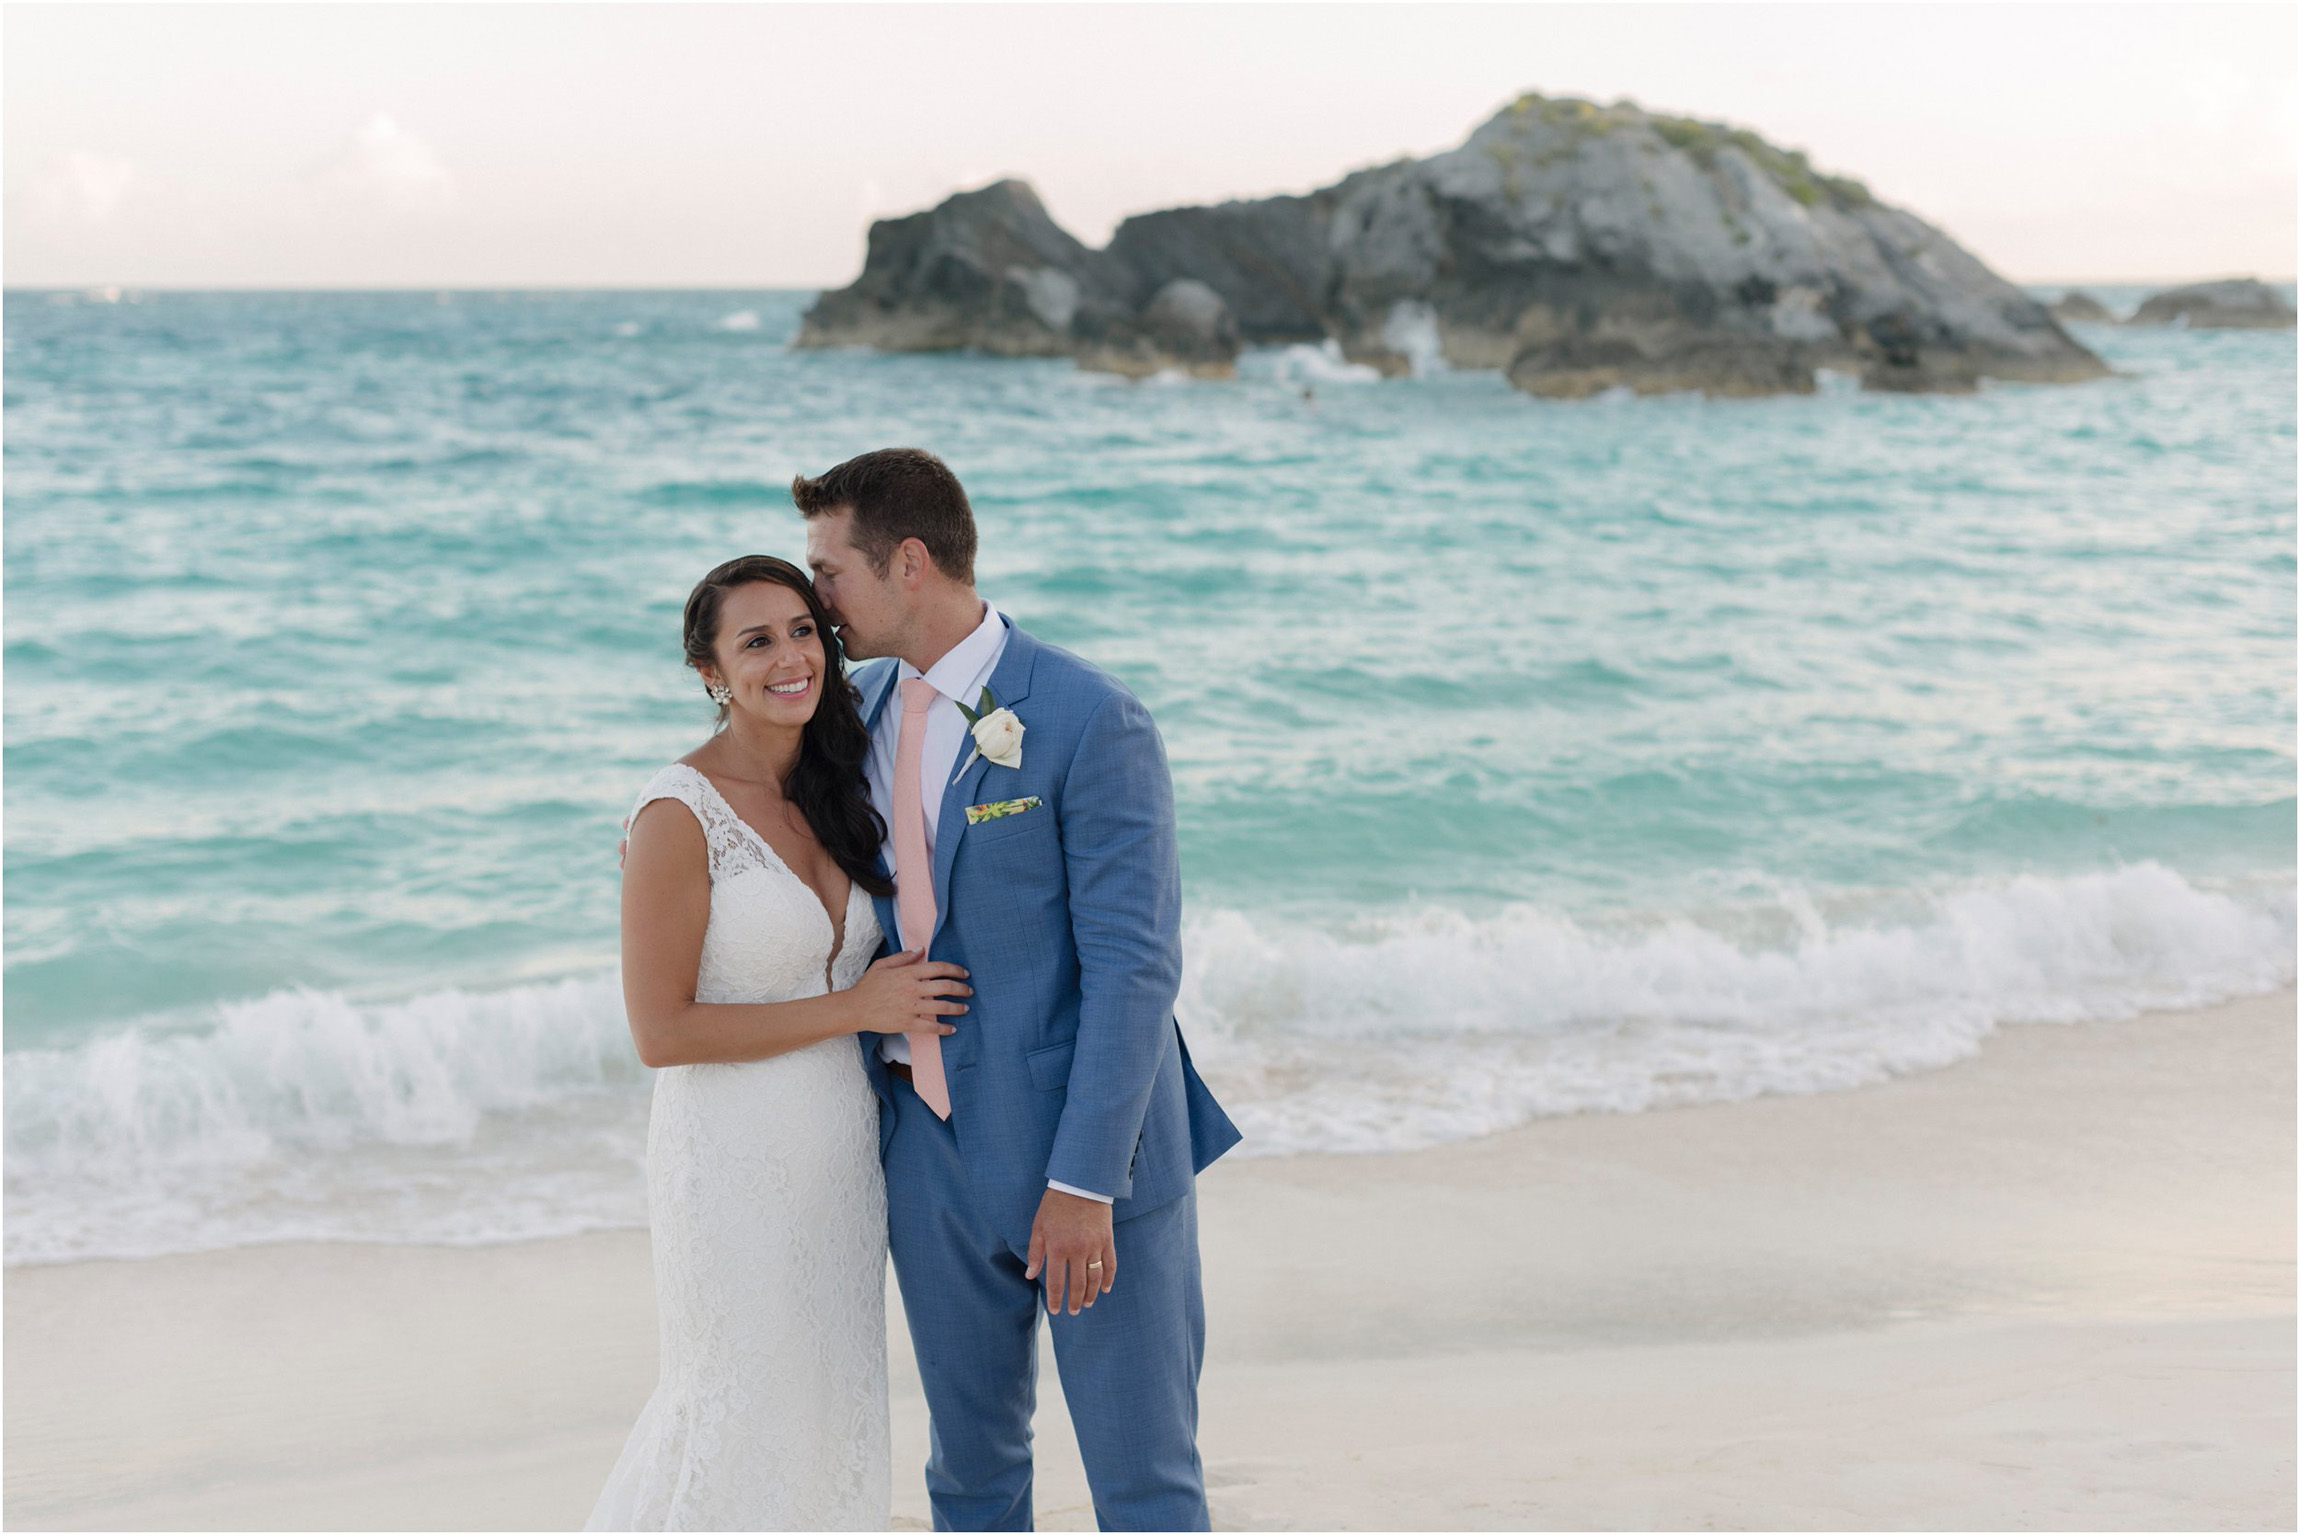 ©FianderFoto_Bermuda Wedding Photographer_Fairmont Southampton_Wedding_Anna_Thomas_092.jpg